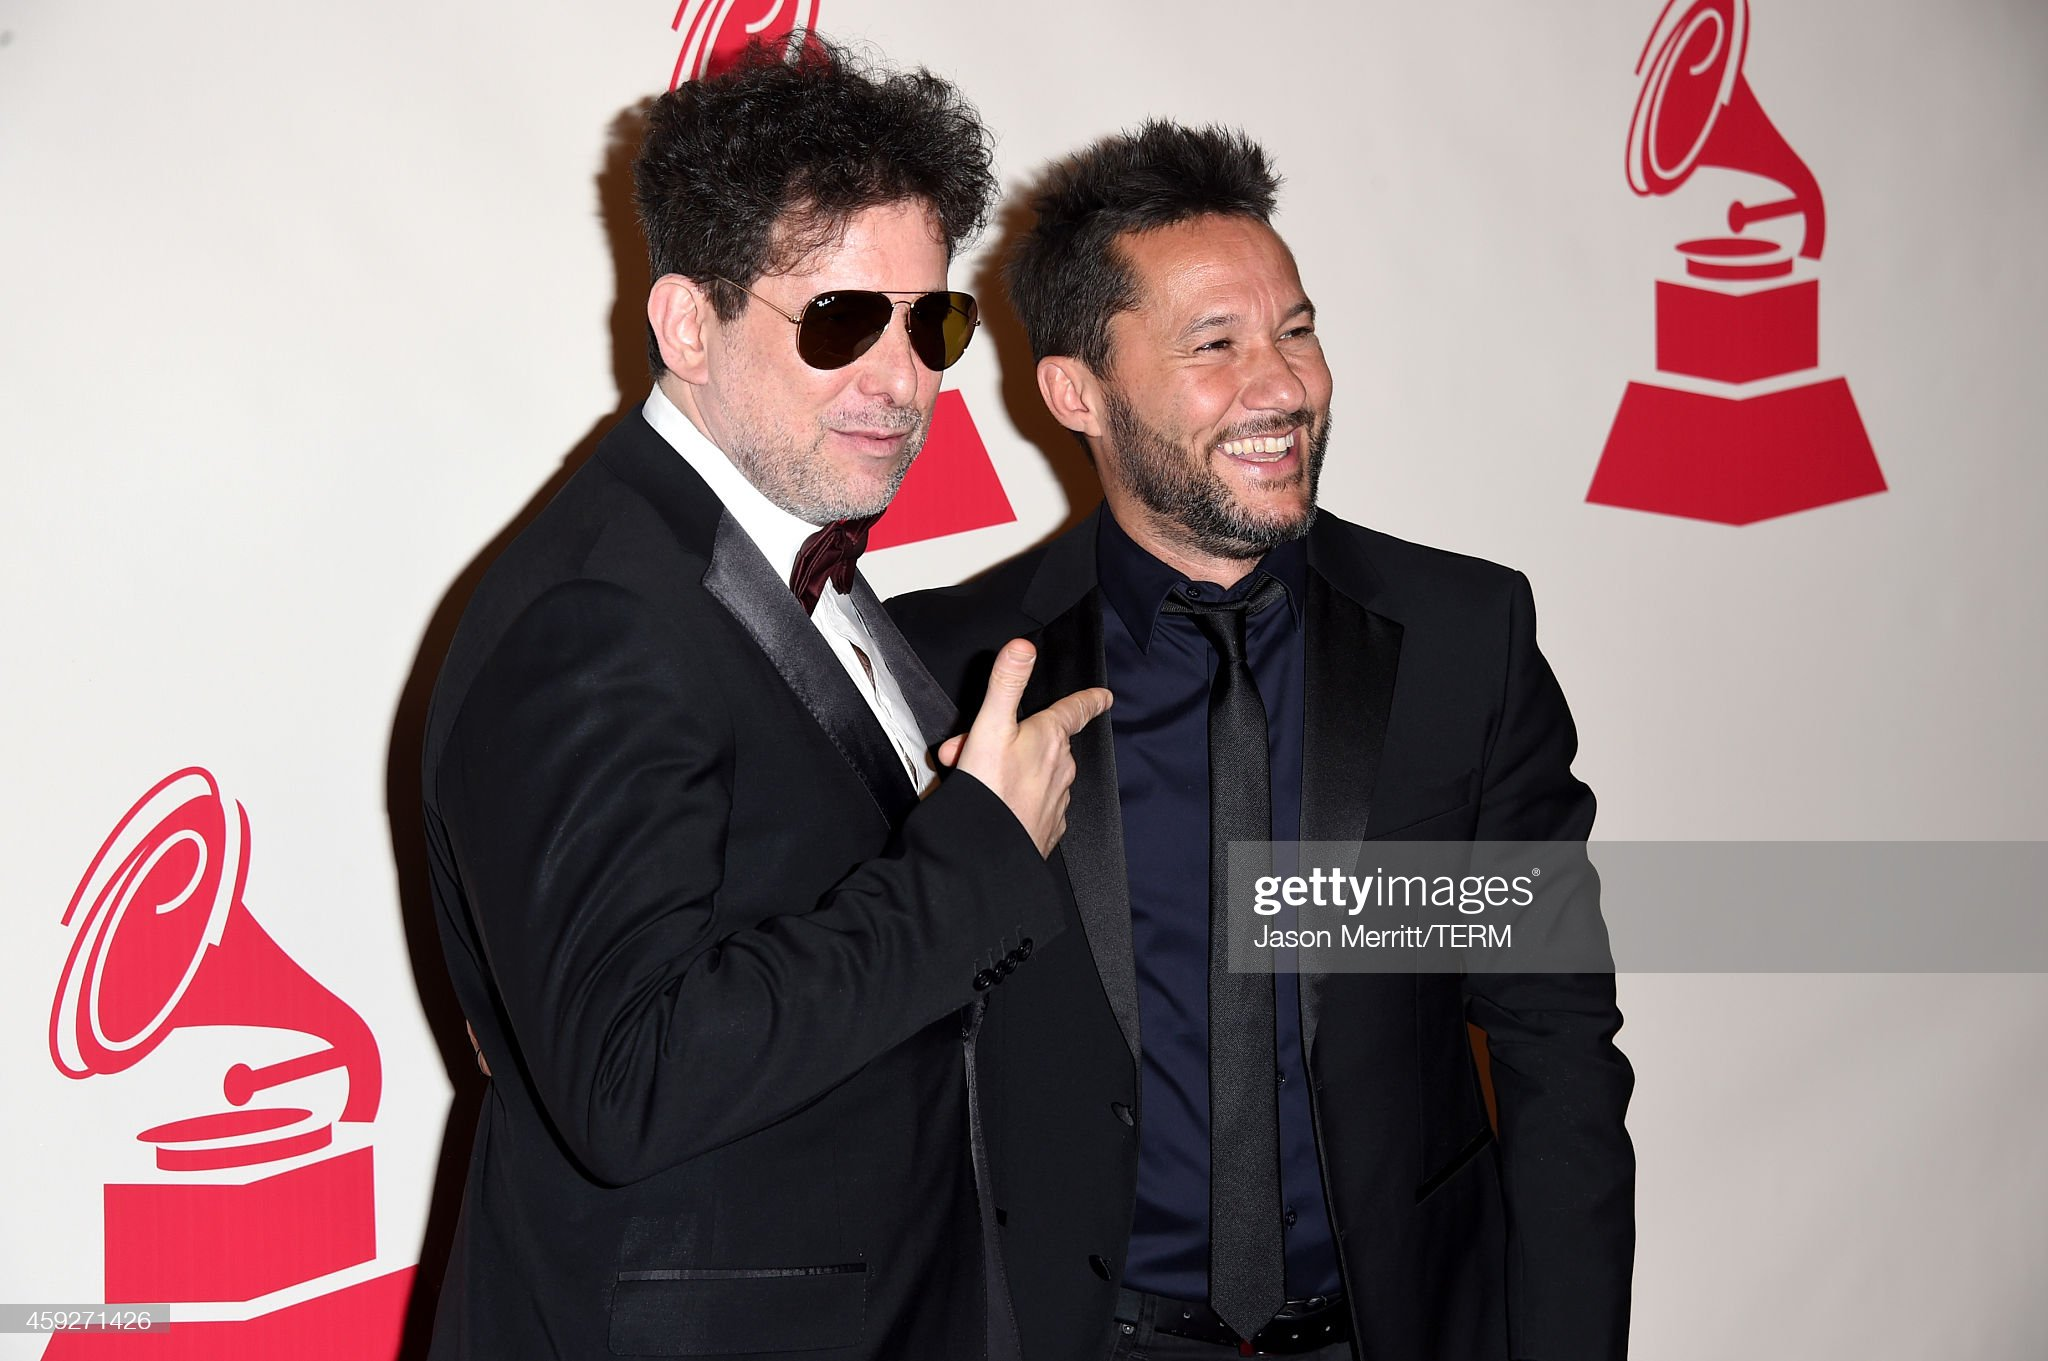 ¿Cuánto mide Andrés Calamaro? - Altura Musician-andres-calamaro-and-singer-diego-torres-attend-the-2014-of-picture-id459271426?s=2048x2048